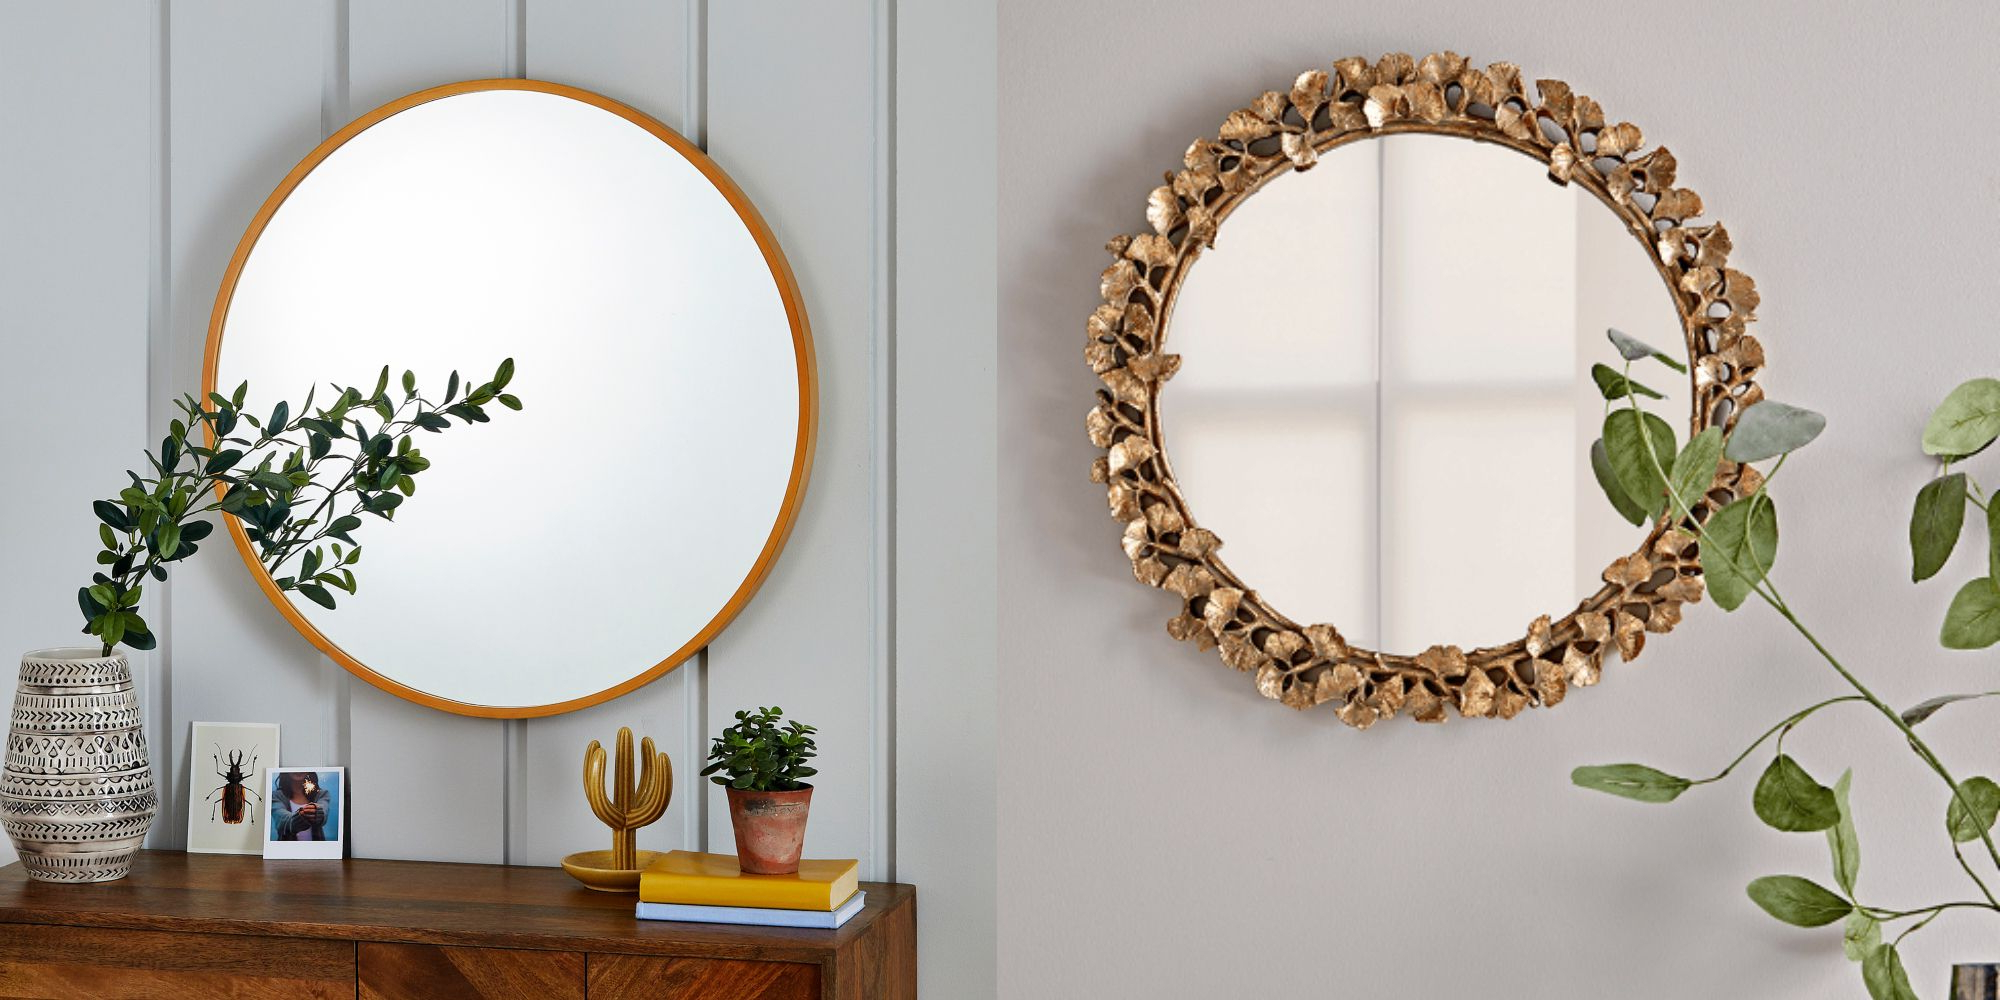 Newest Liberal Round Wall Mirror 7 Statement Mirrors To Buy For Your Home In Point Reyes Molten Round Wall Mirrors (View 16 of 20)